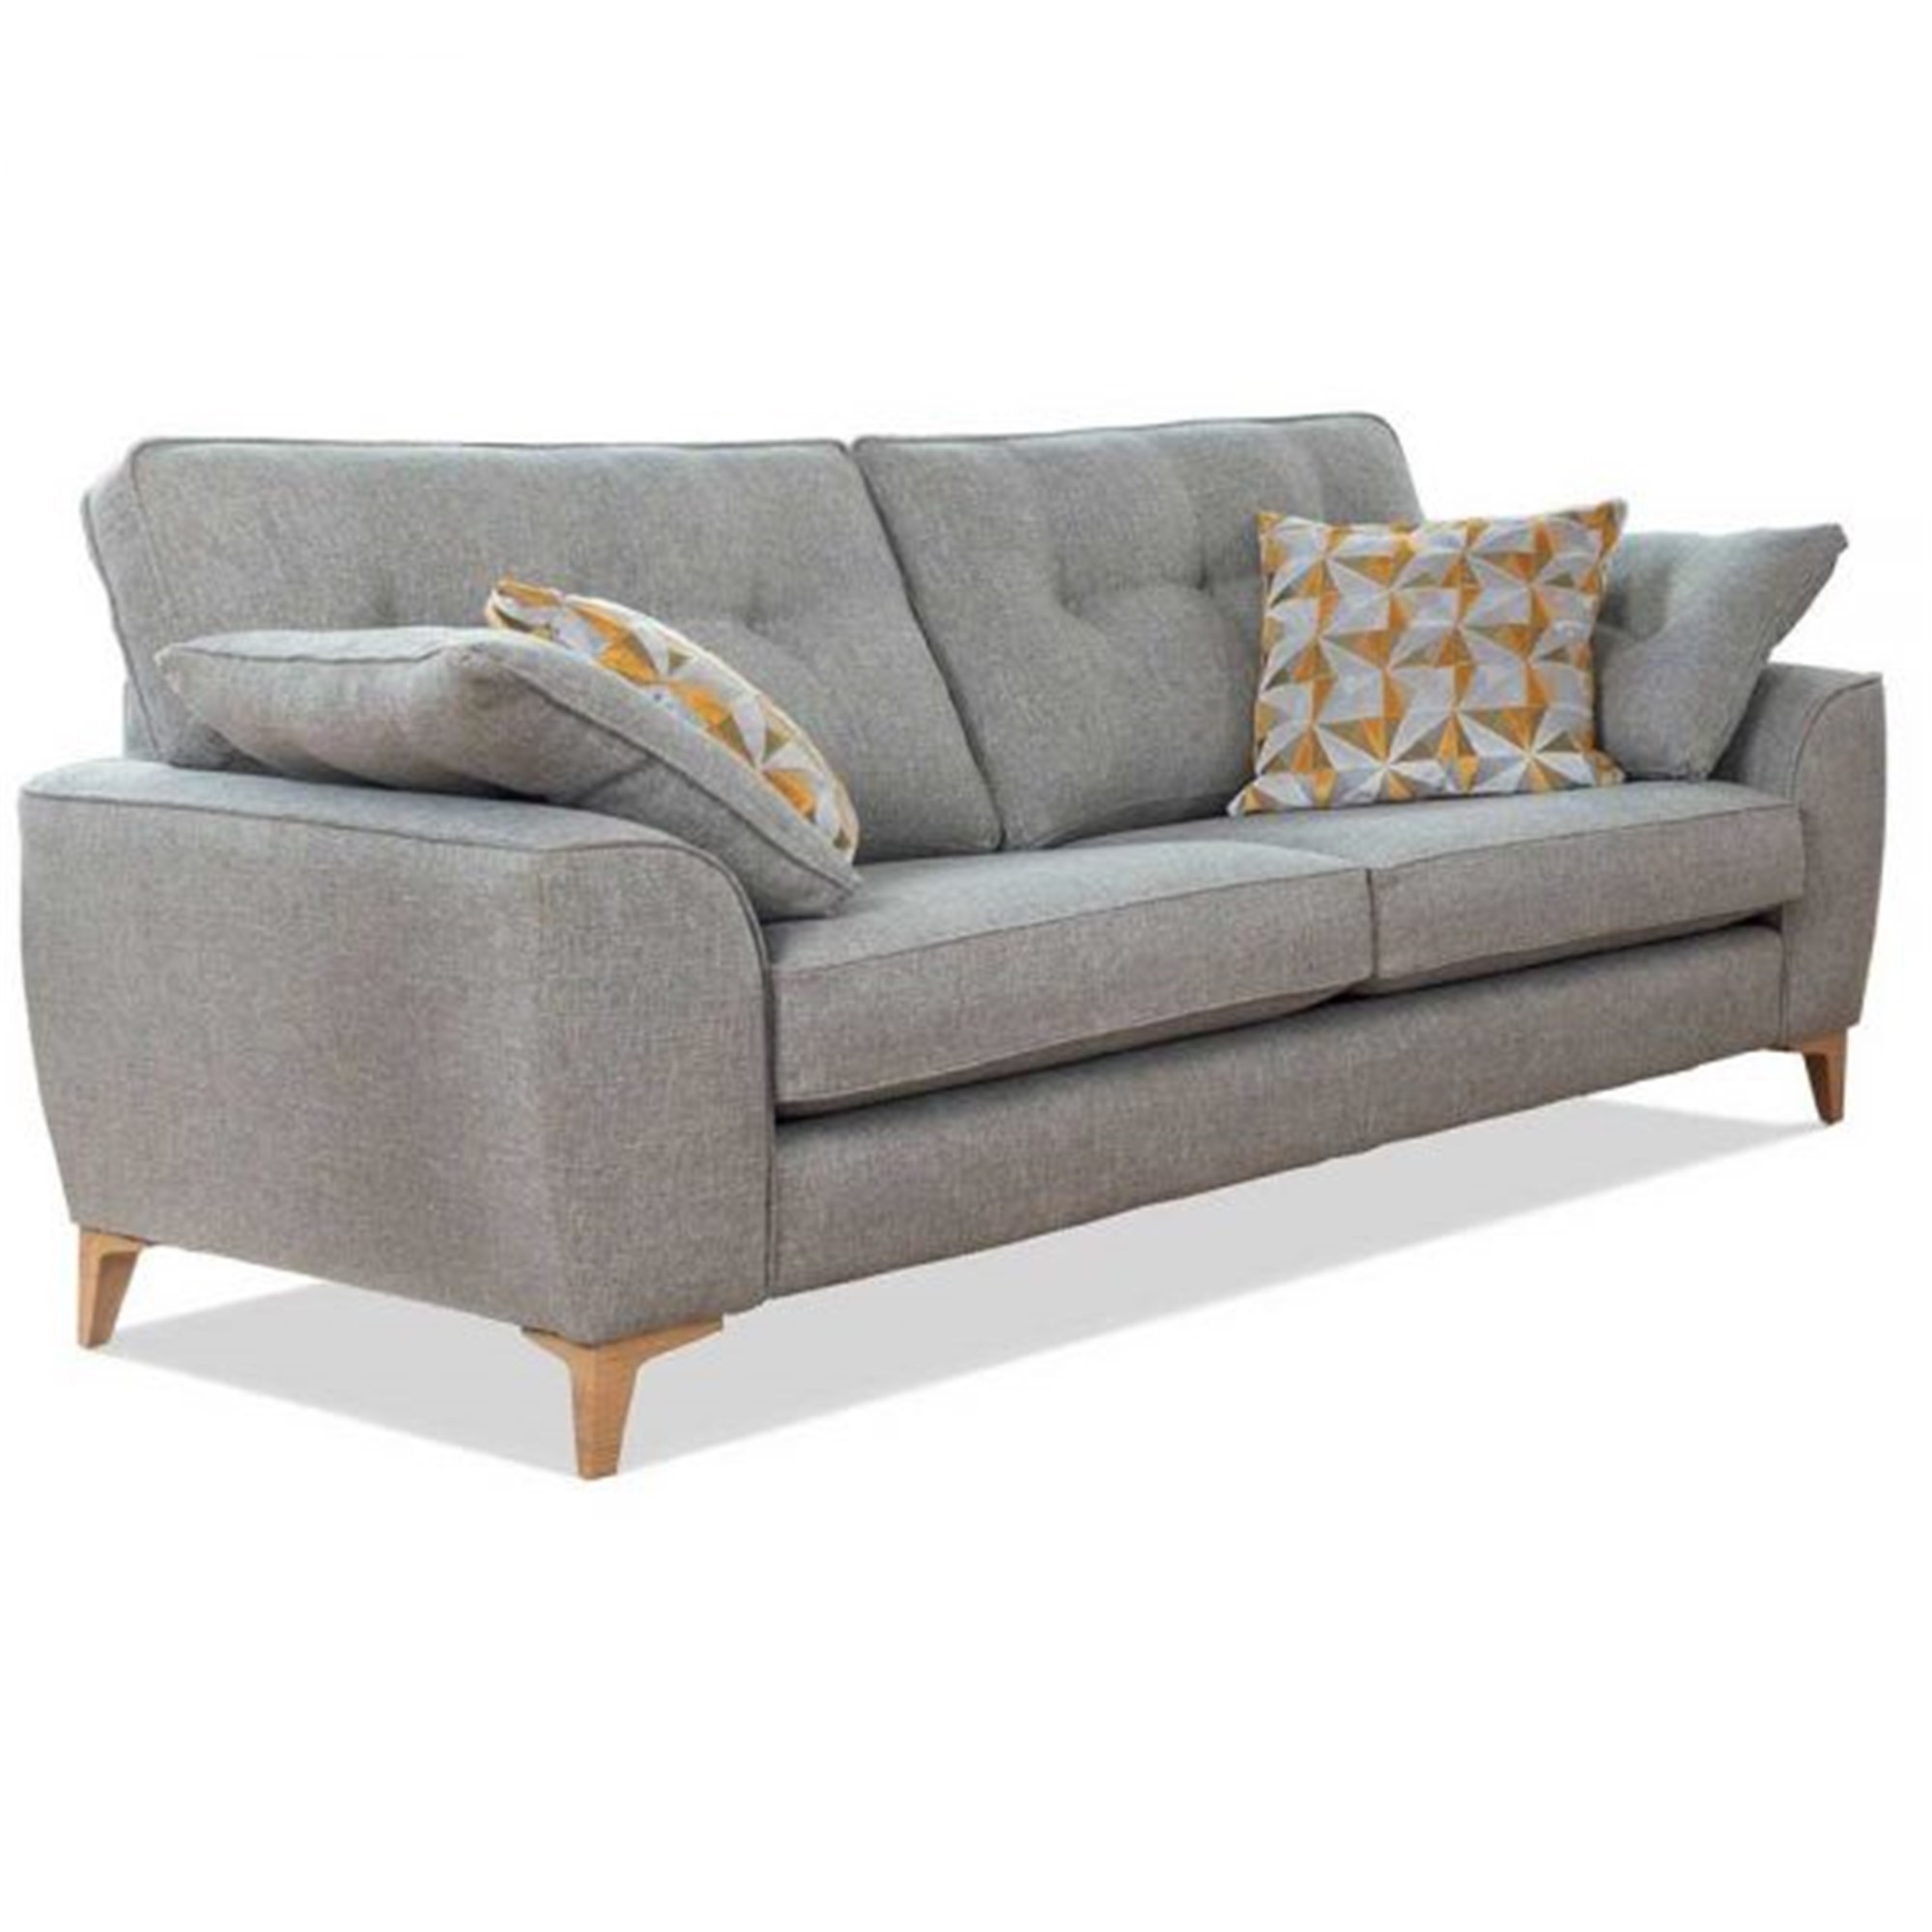 Douglas 3 Seater Sofa Roomes Furniture Interiors Make Yourself A Home